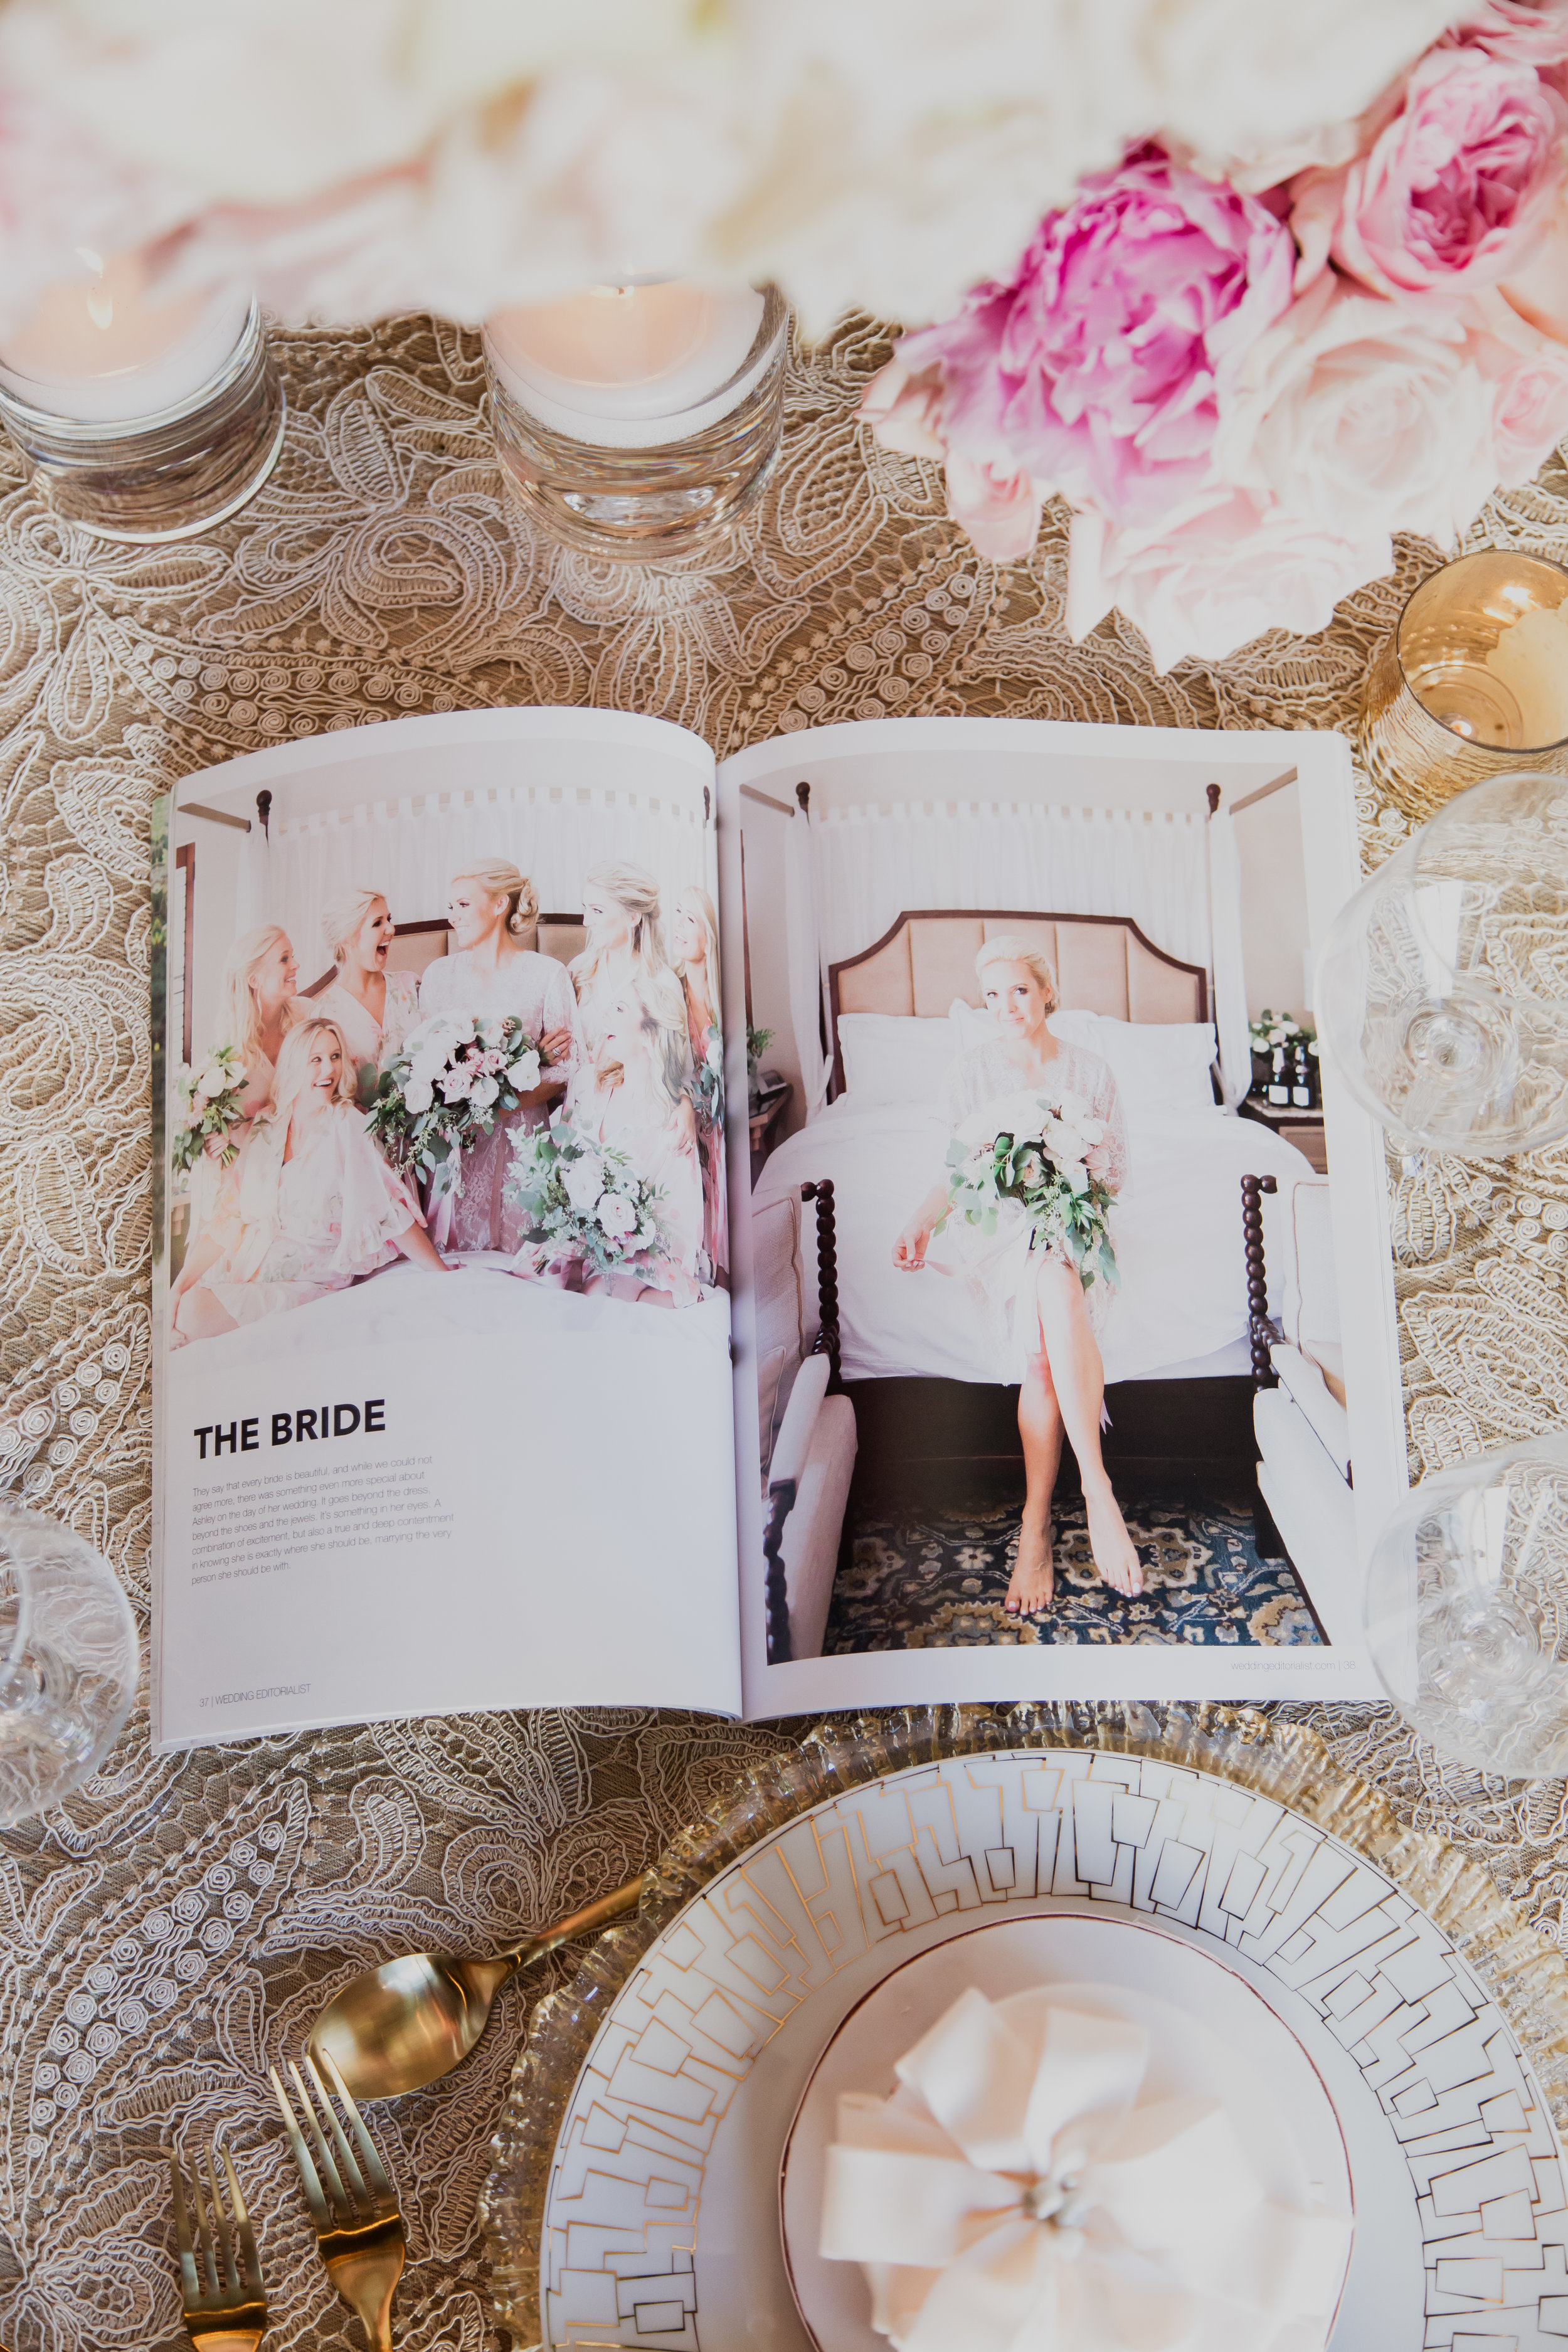 Inside your issue.Check out these amazing custom wedding magazines by Wedding Editorialist! Perfect for couples and businesses. Photo by Adam Frazier .www.weddingeditorialist.com.